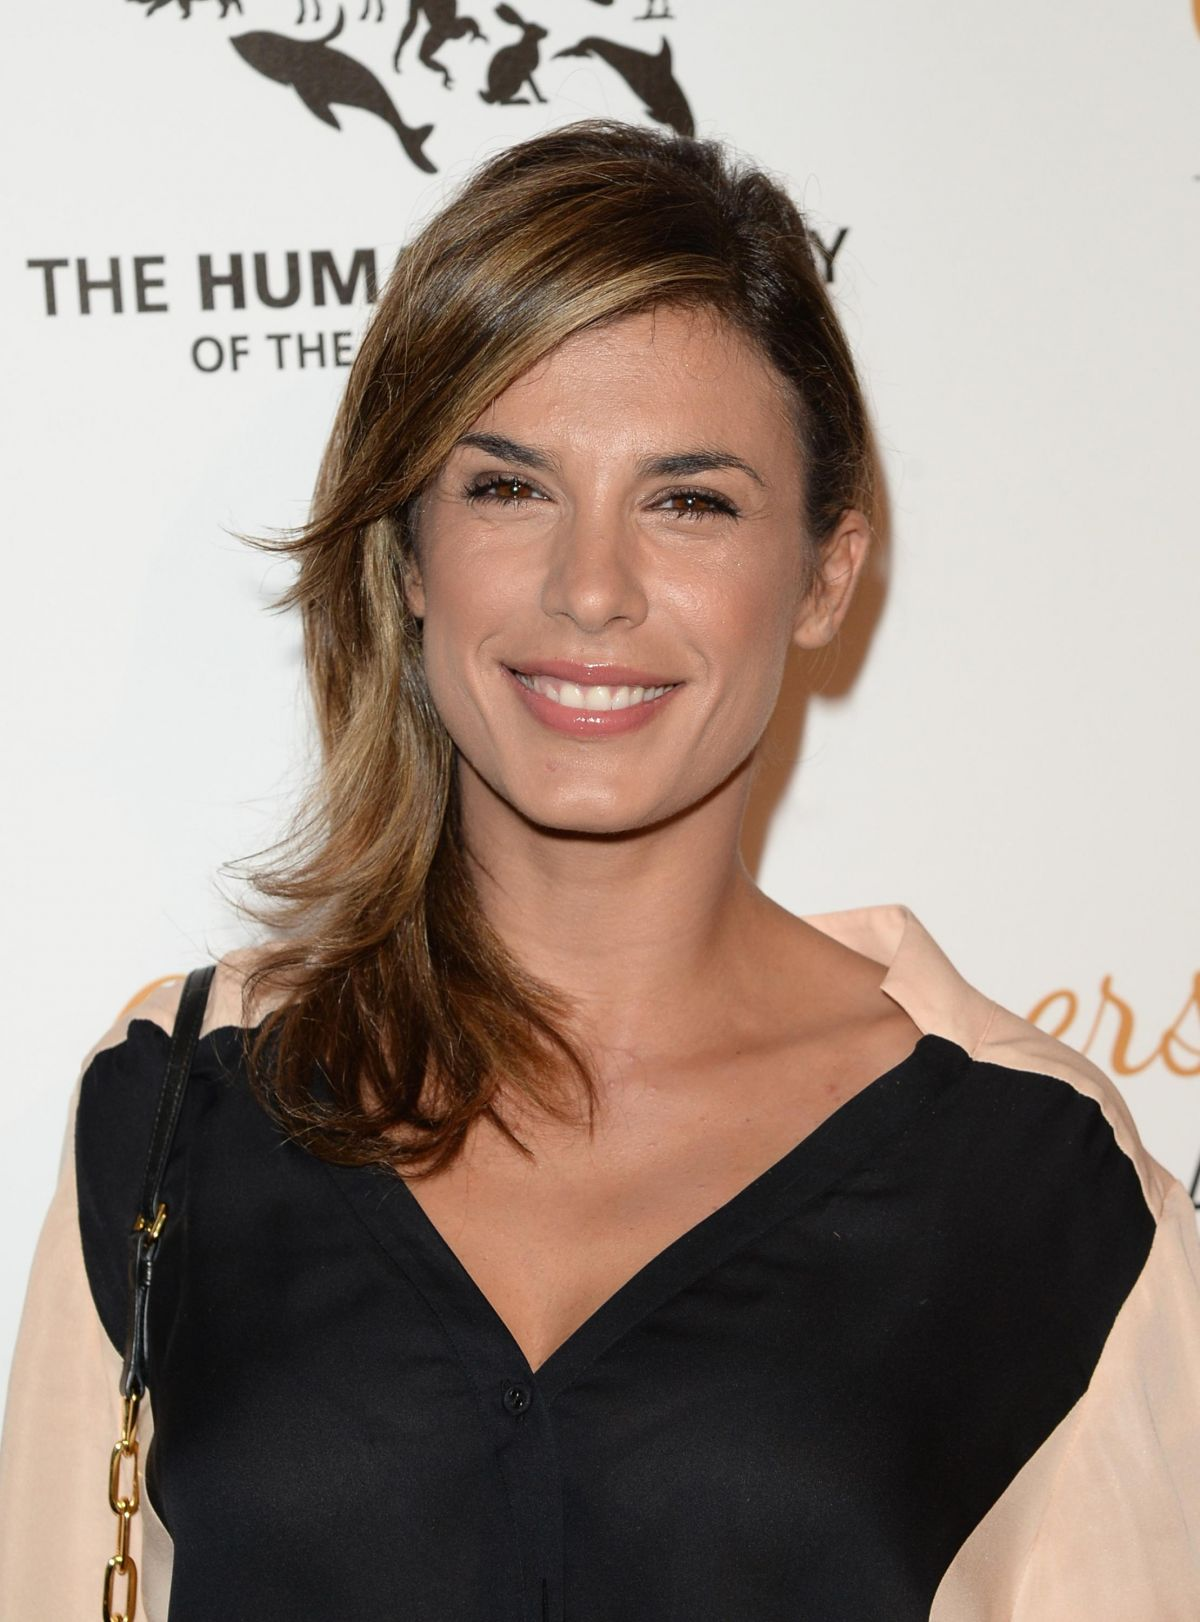 ELISABETTA CANALIS at Humane Society of the US 60th Anniversary Gala in Beverly Hills